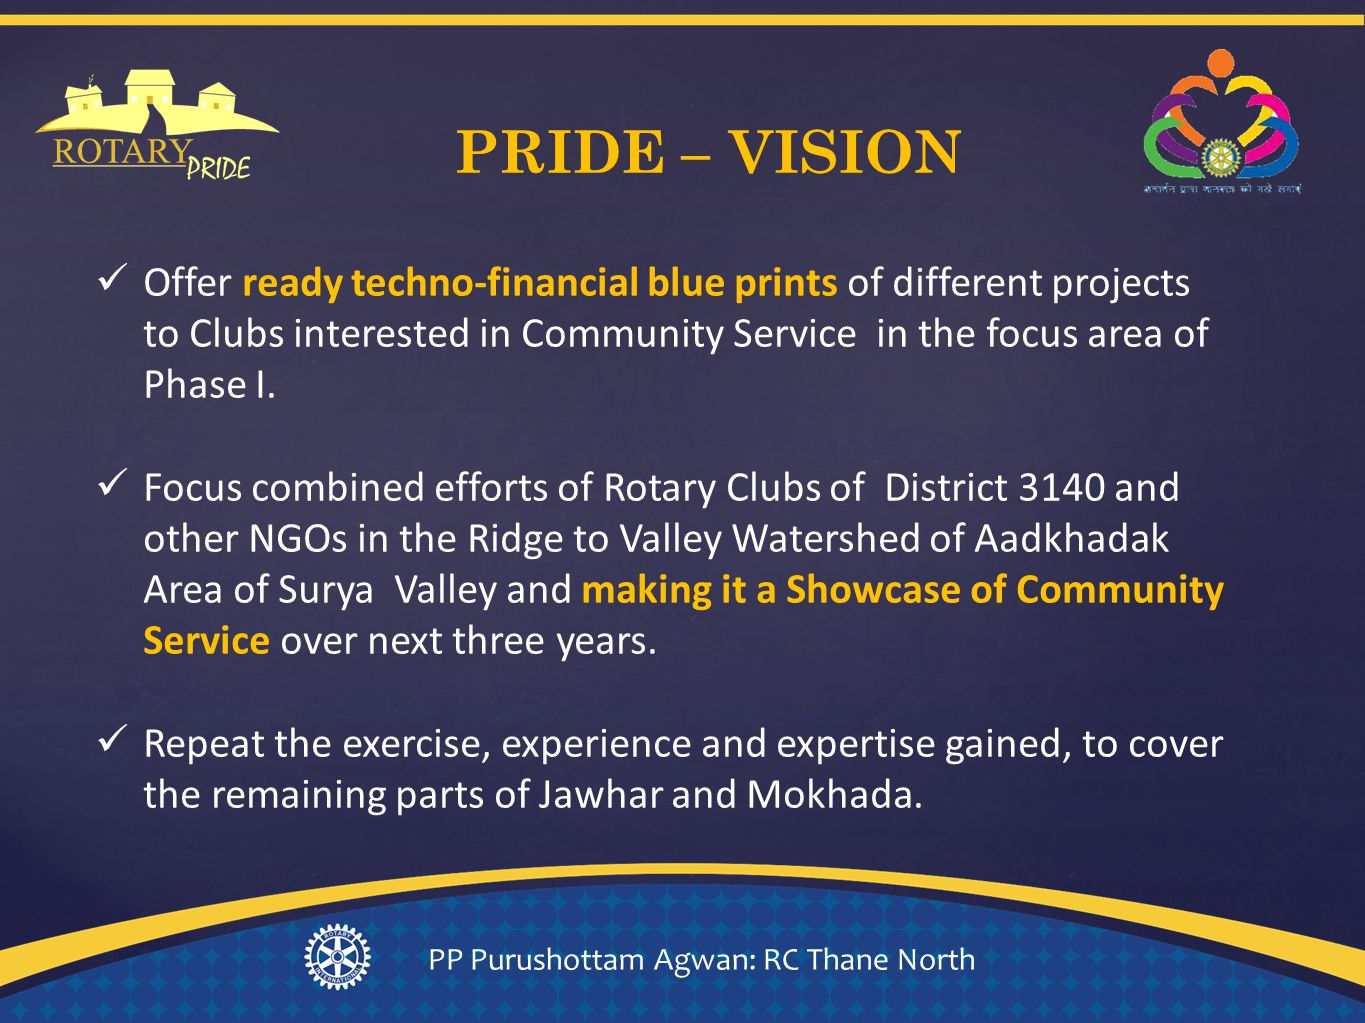 Offer ready techno-financial blue prints of different projects to Clubs interested in Community Service in the focus area of Phase I.